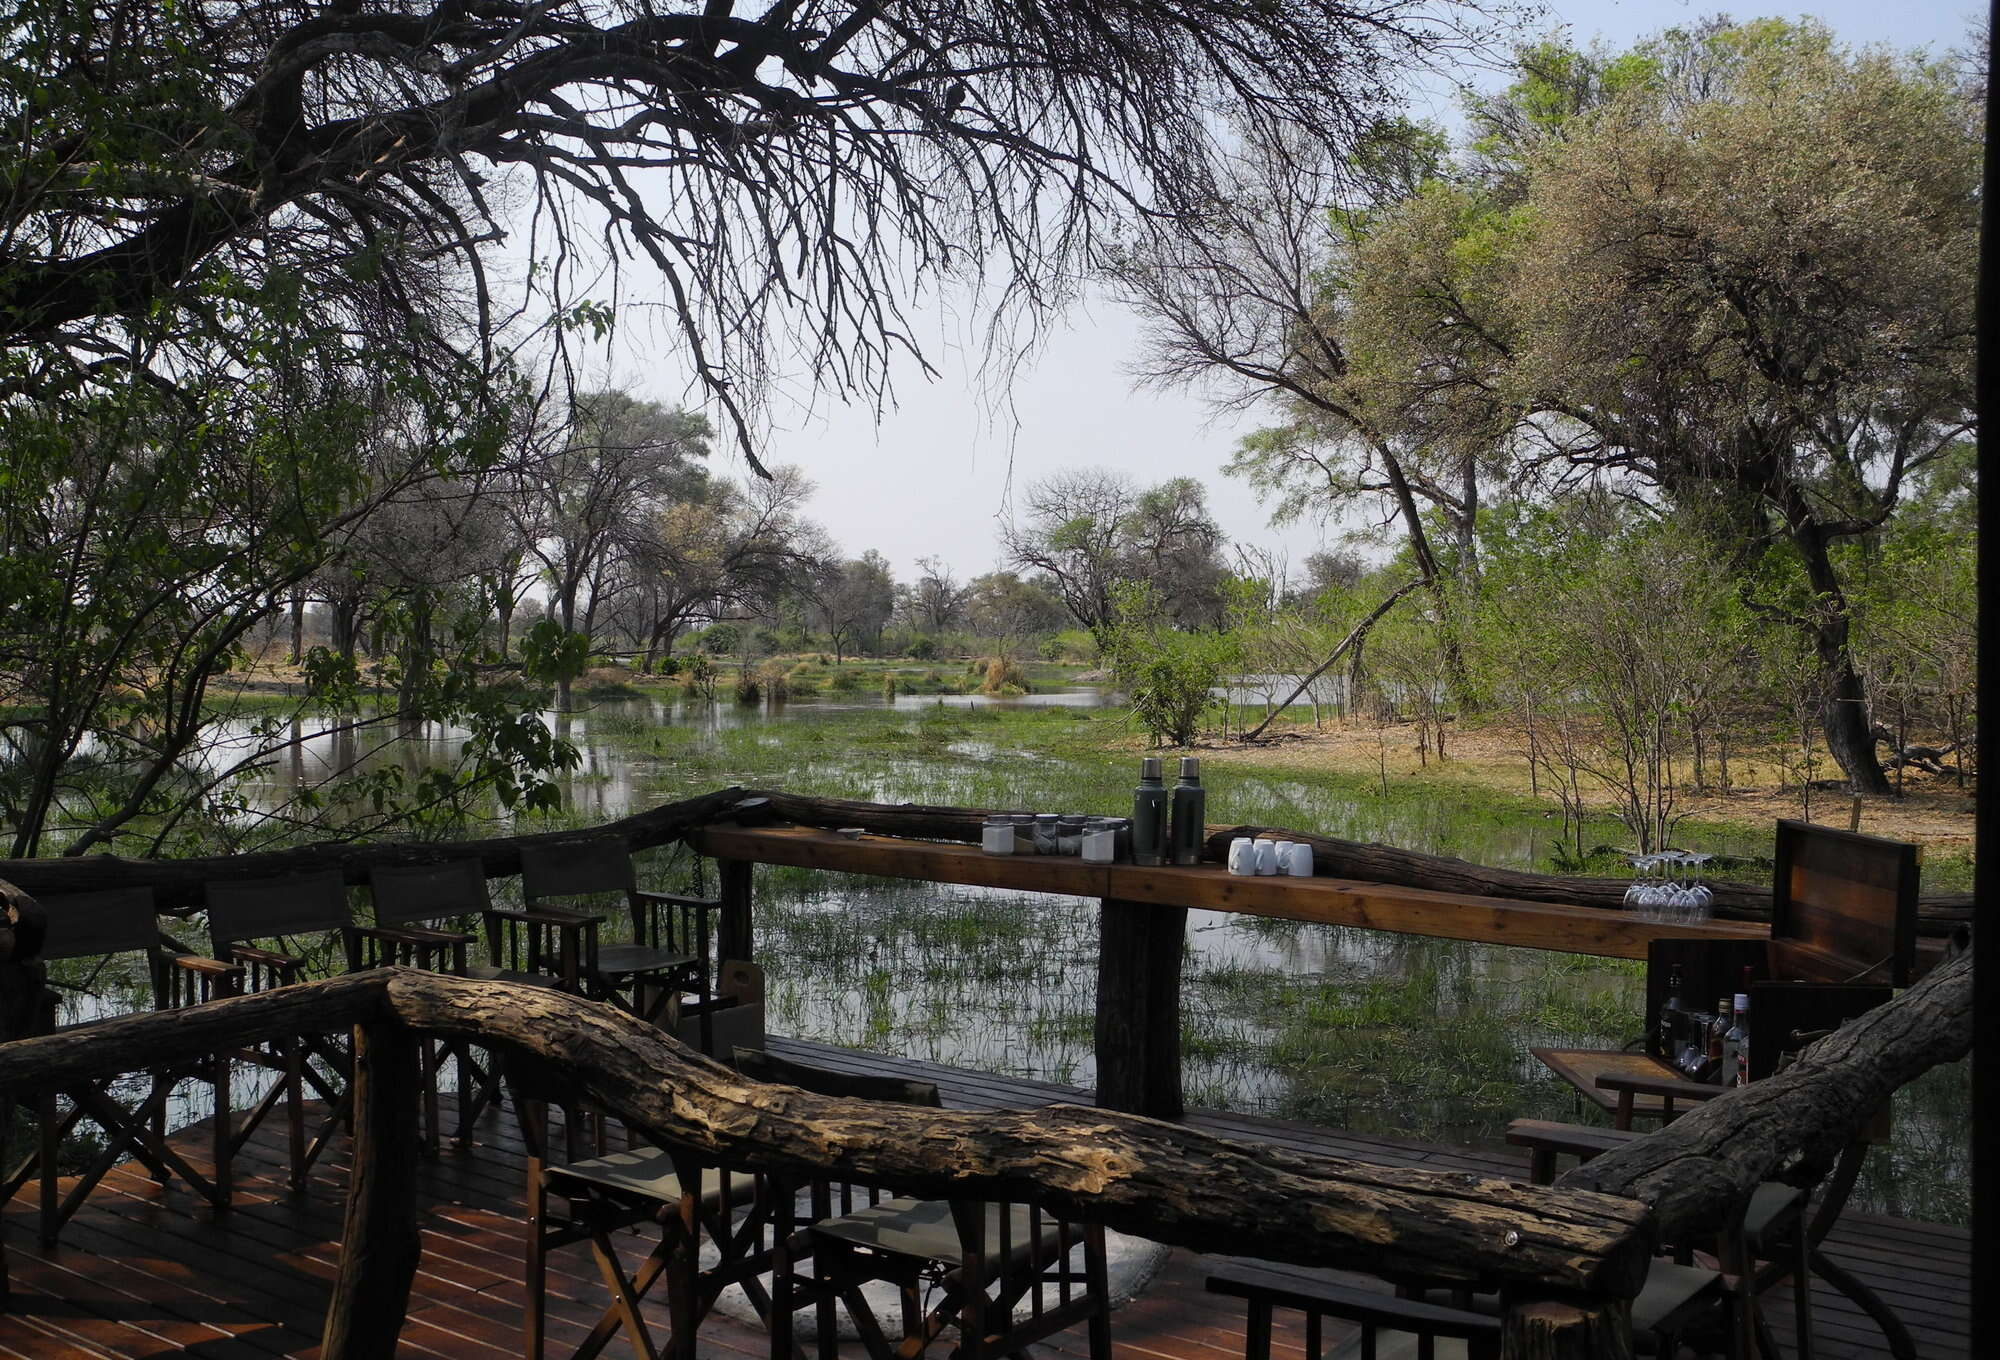 Good value Botswana safari – exploring the diverse Khwai area and wildlife rich northern Moremi from Khwai Tented Camp, and the Linyanti Reserve from Linyanti Bush Camp.